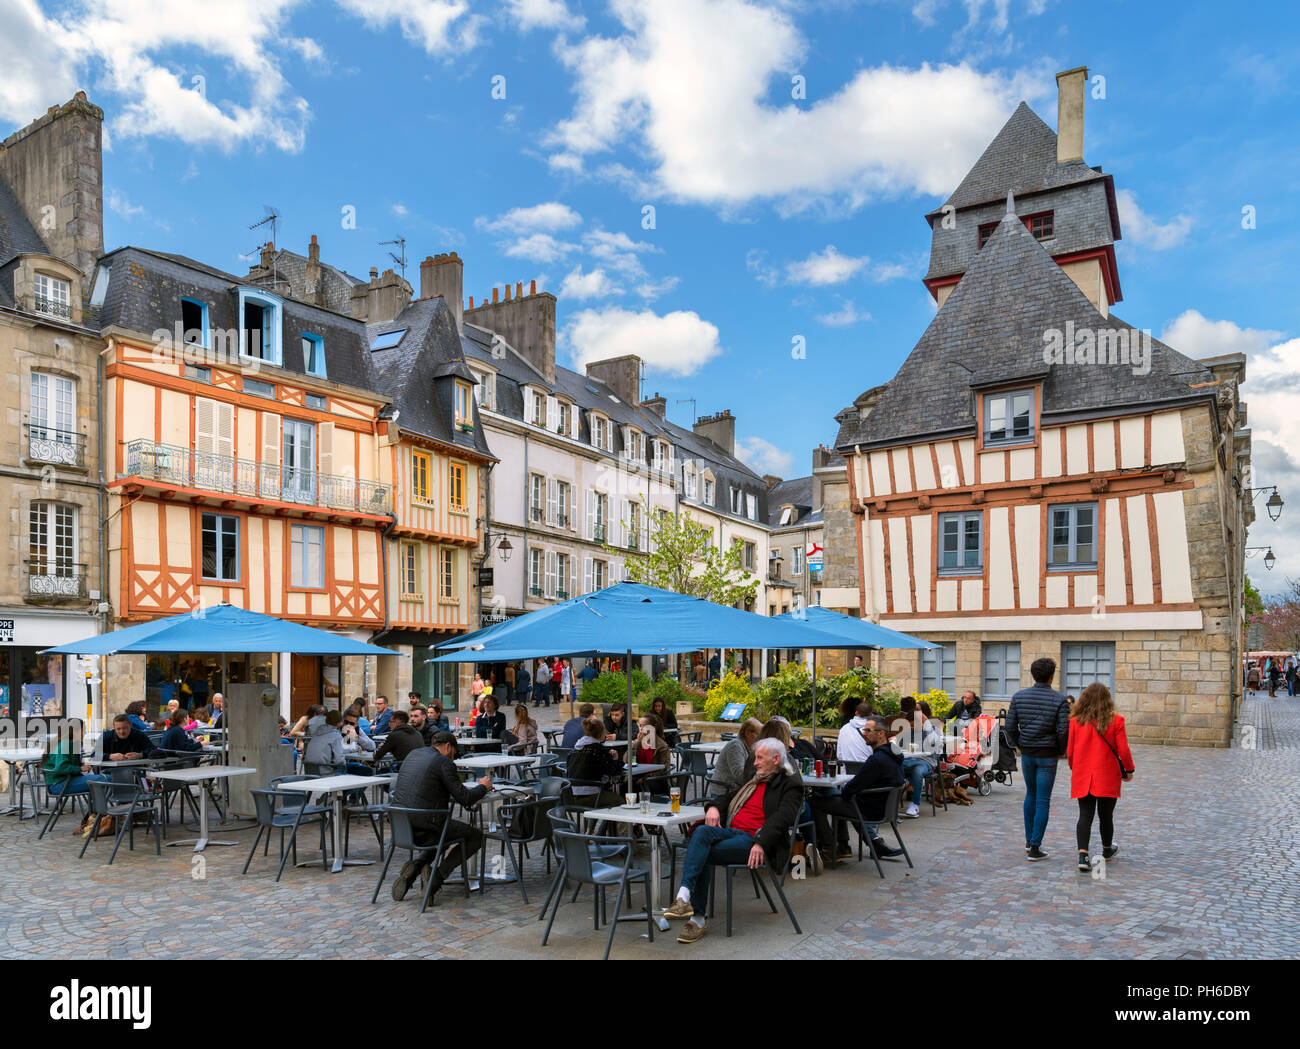 Cafe in Place Terre au Duc in the old town, Quimper, Finistere, Brittany, France - Stock Image